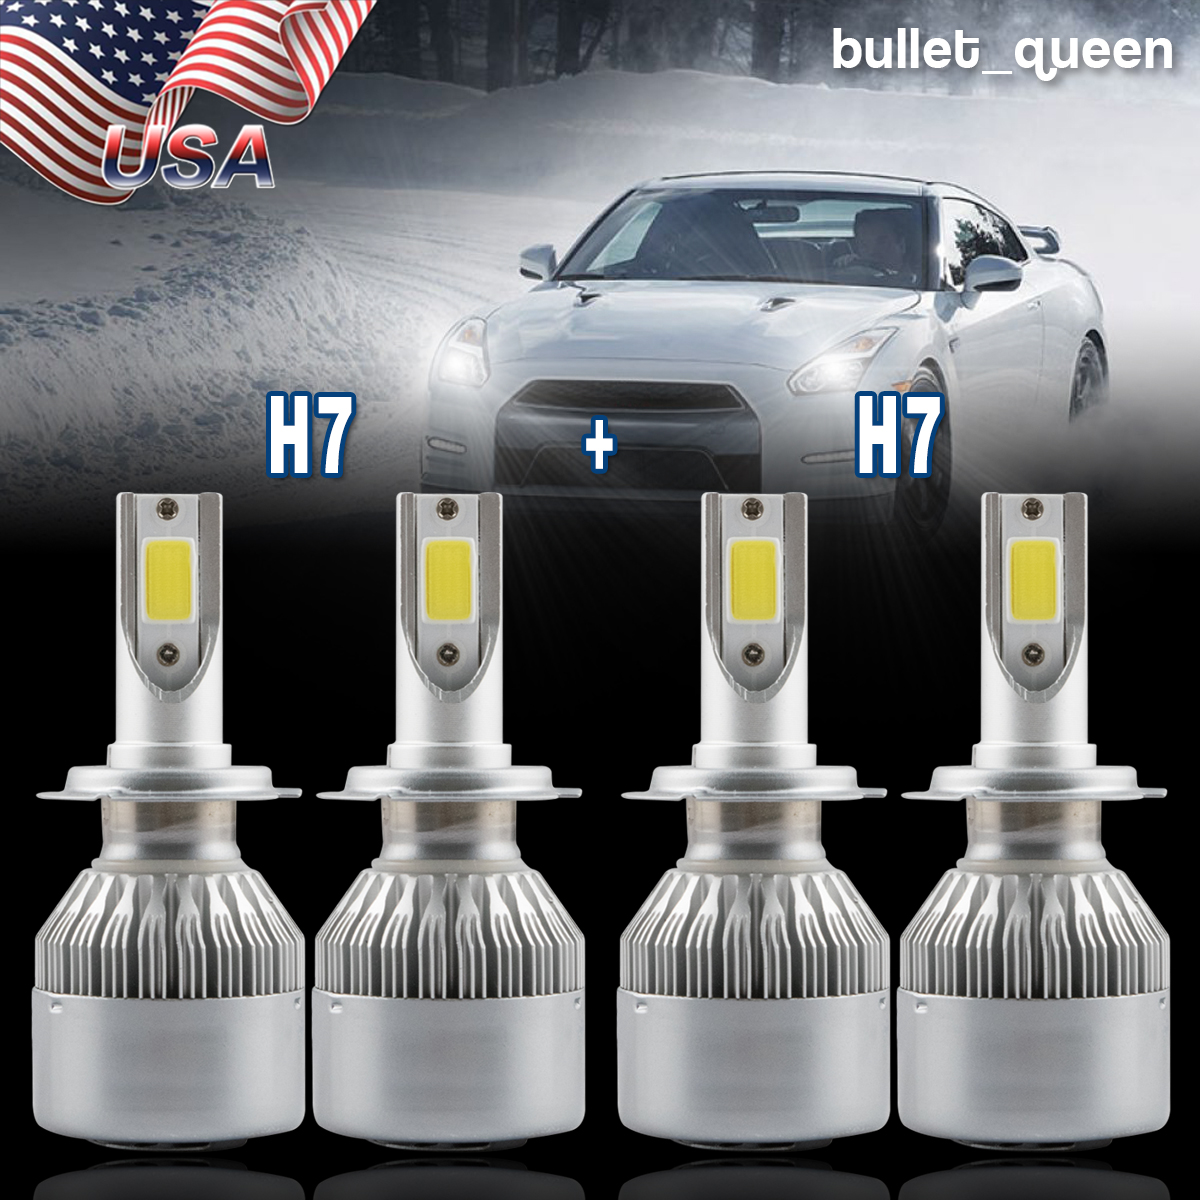 H7 H-7 Headlight Bulb